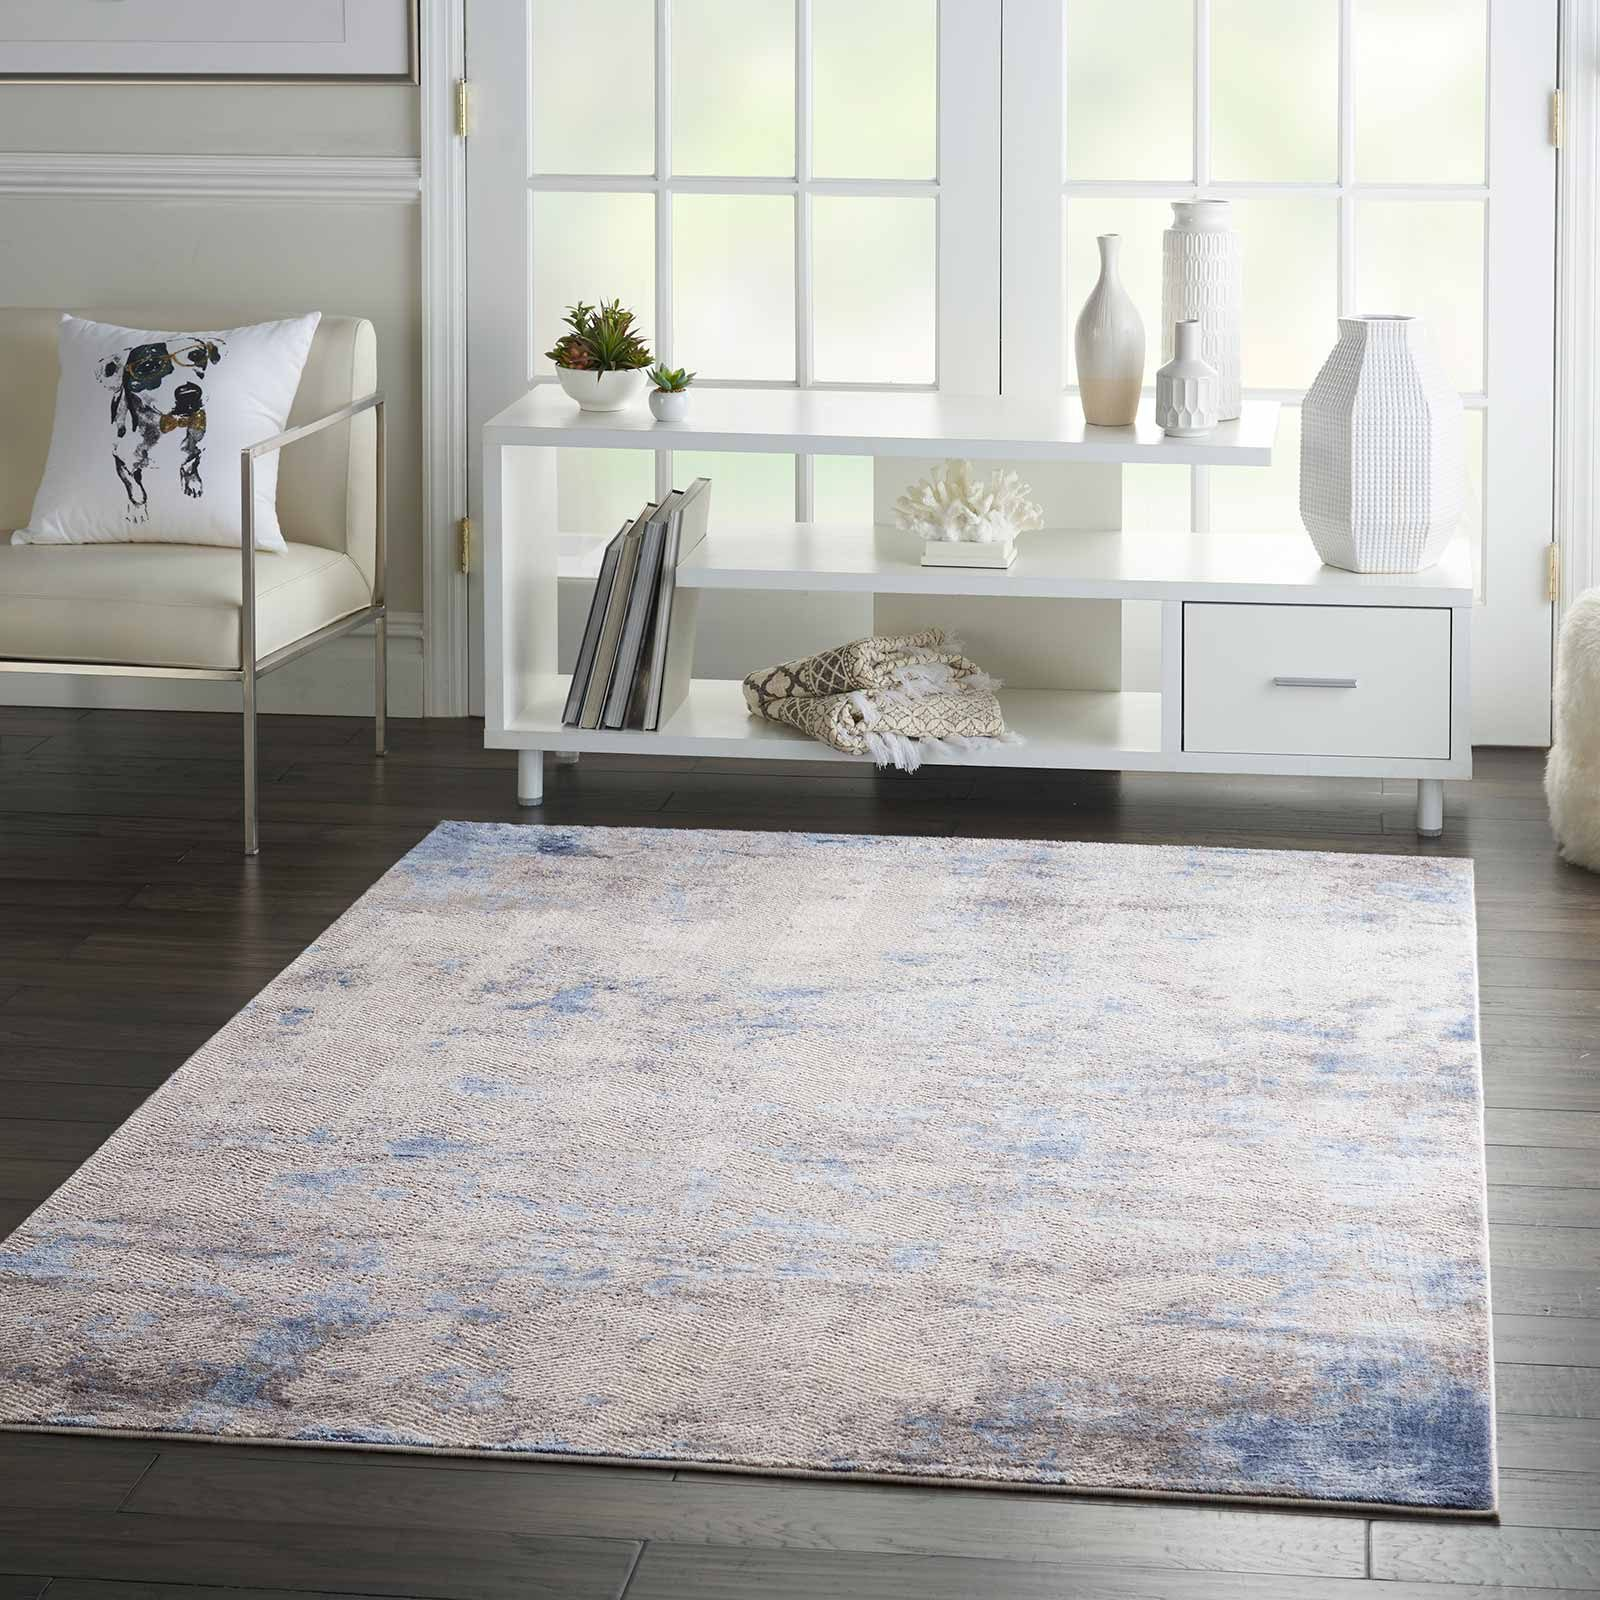 Andessi tapijt Silky Textures SLY04 BLUE IVORY GREY 5x7 099446710178 interior 3 C